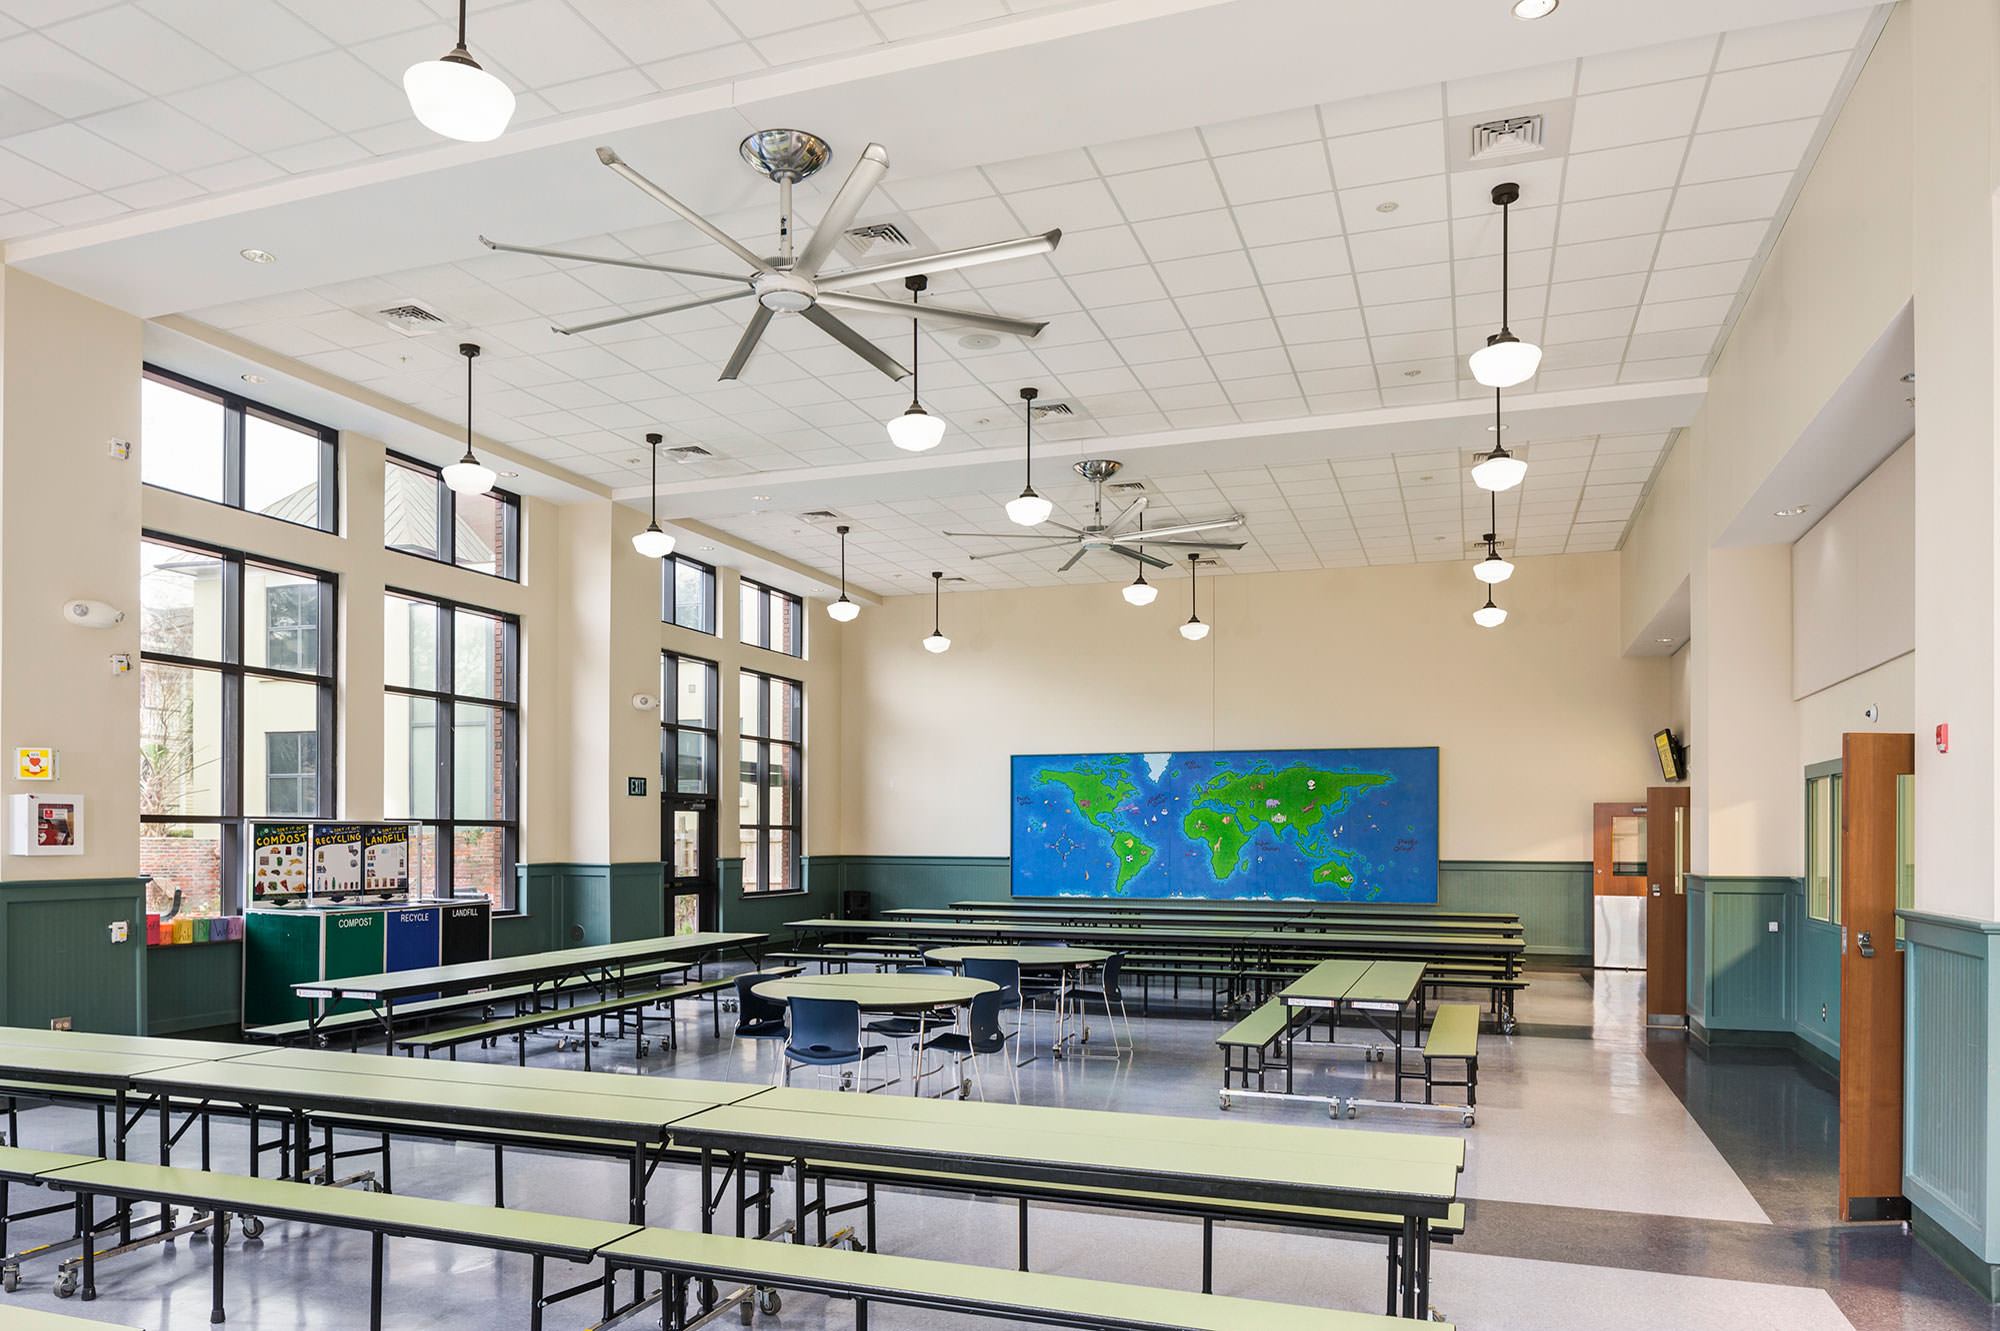 Portable Fan In A Classroom : Quiet large hvls ceiling fans for classrooms lecture